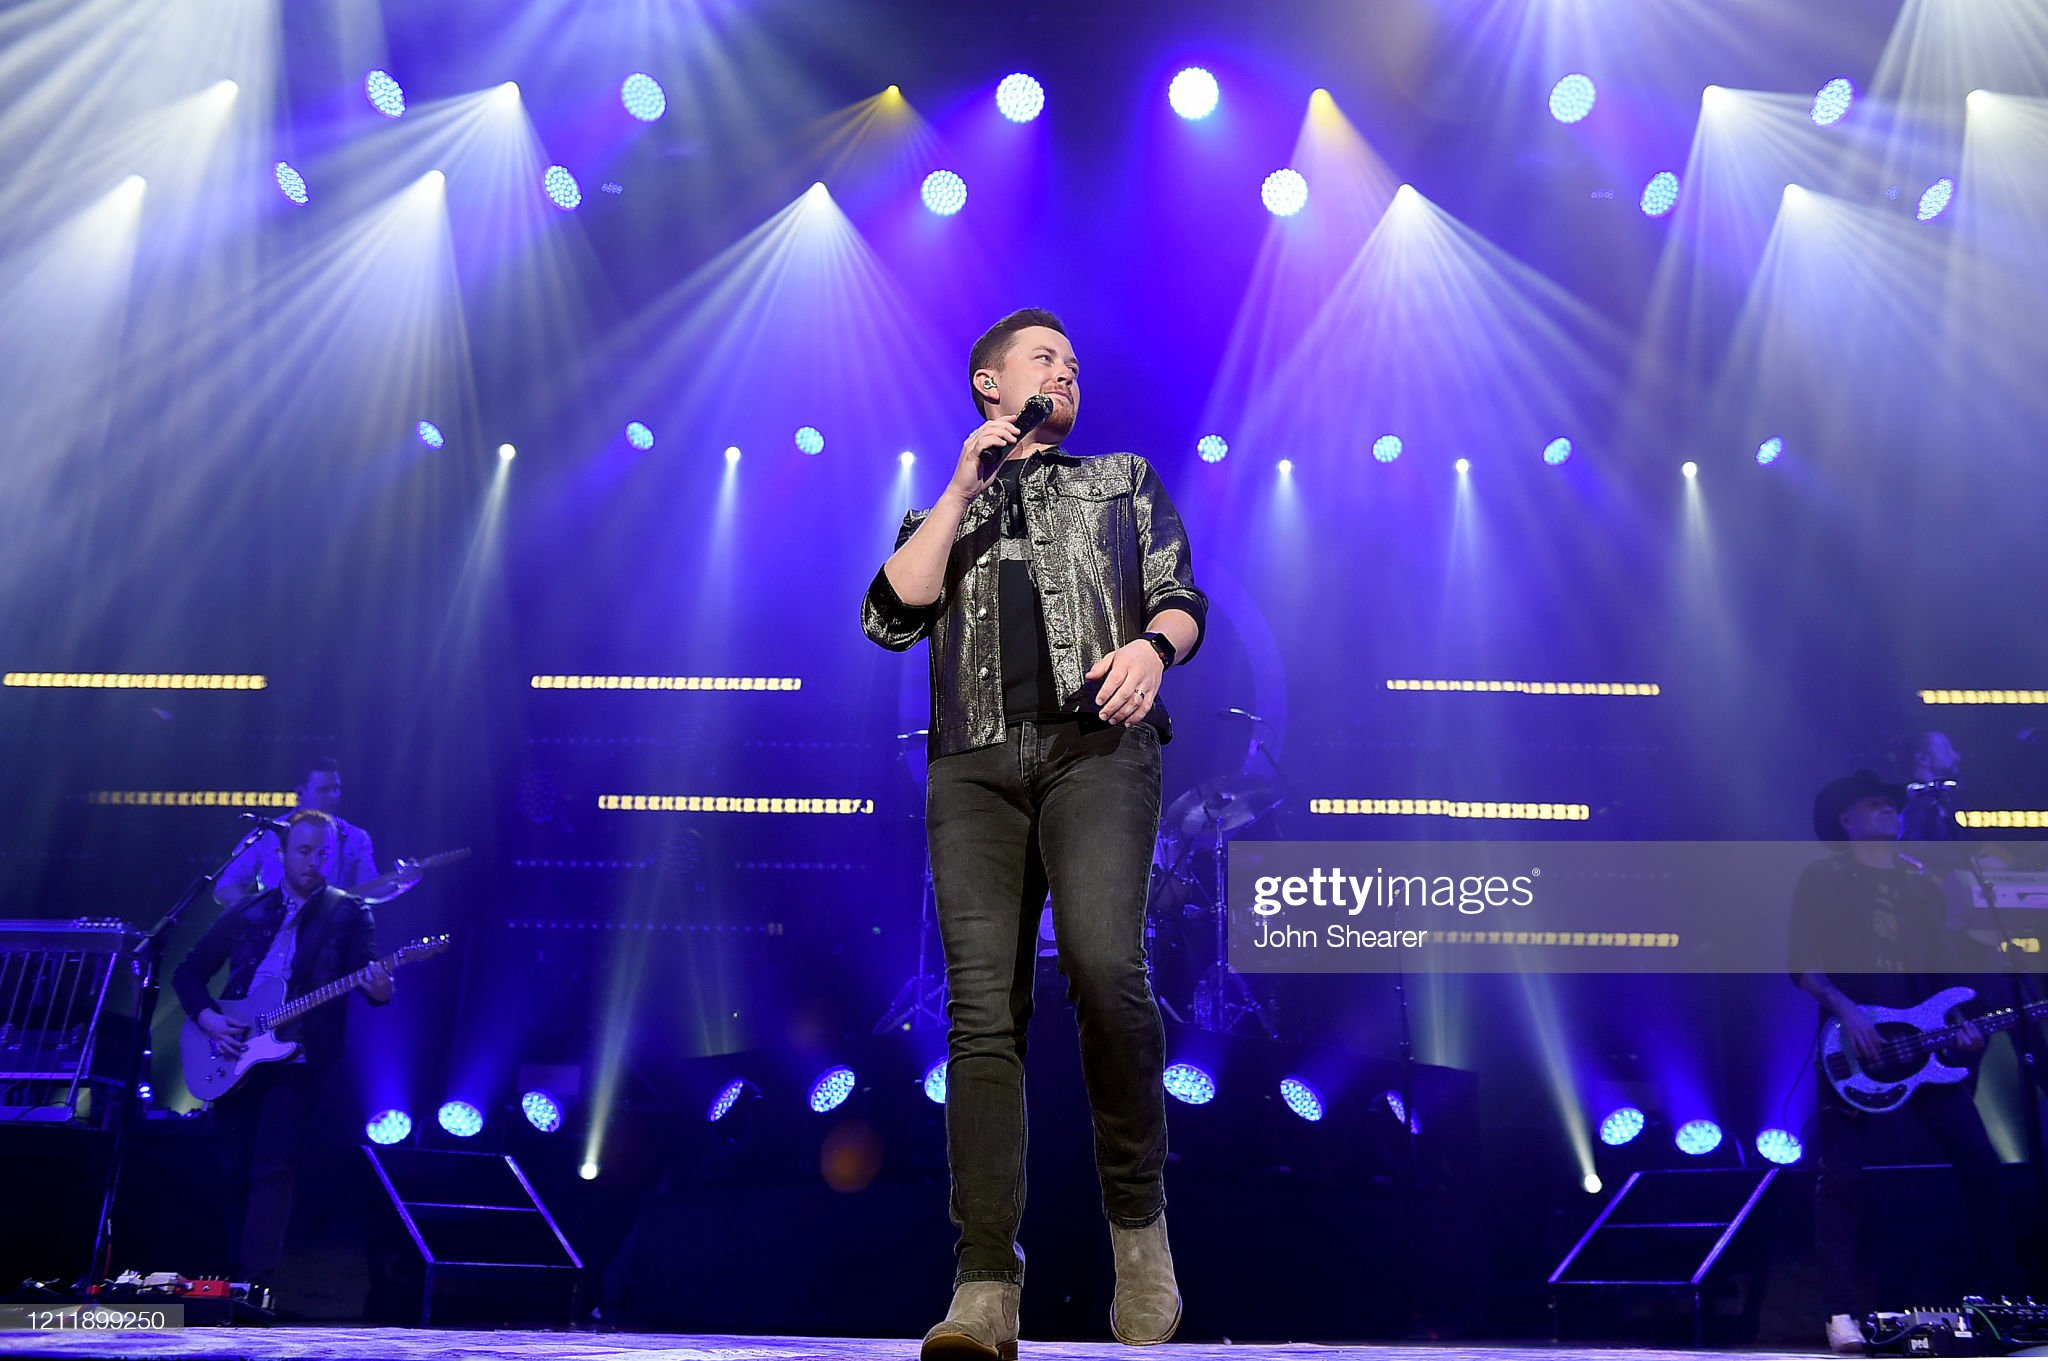 scotty-mccreery-performs-onstage-at-ryma